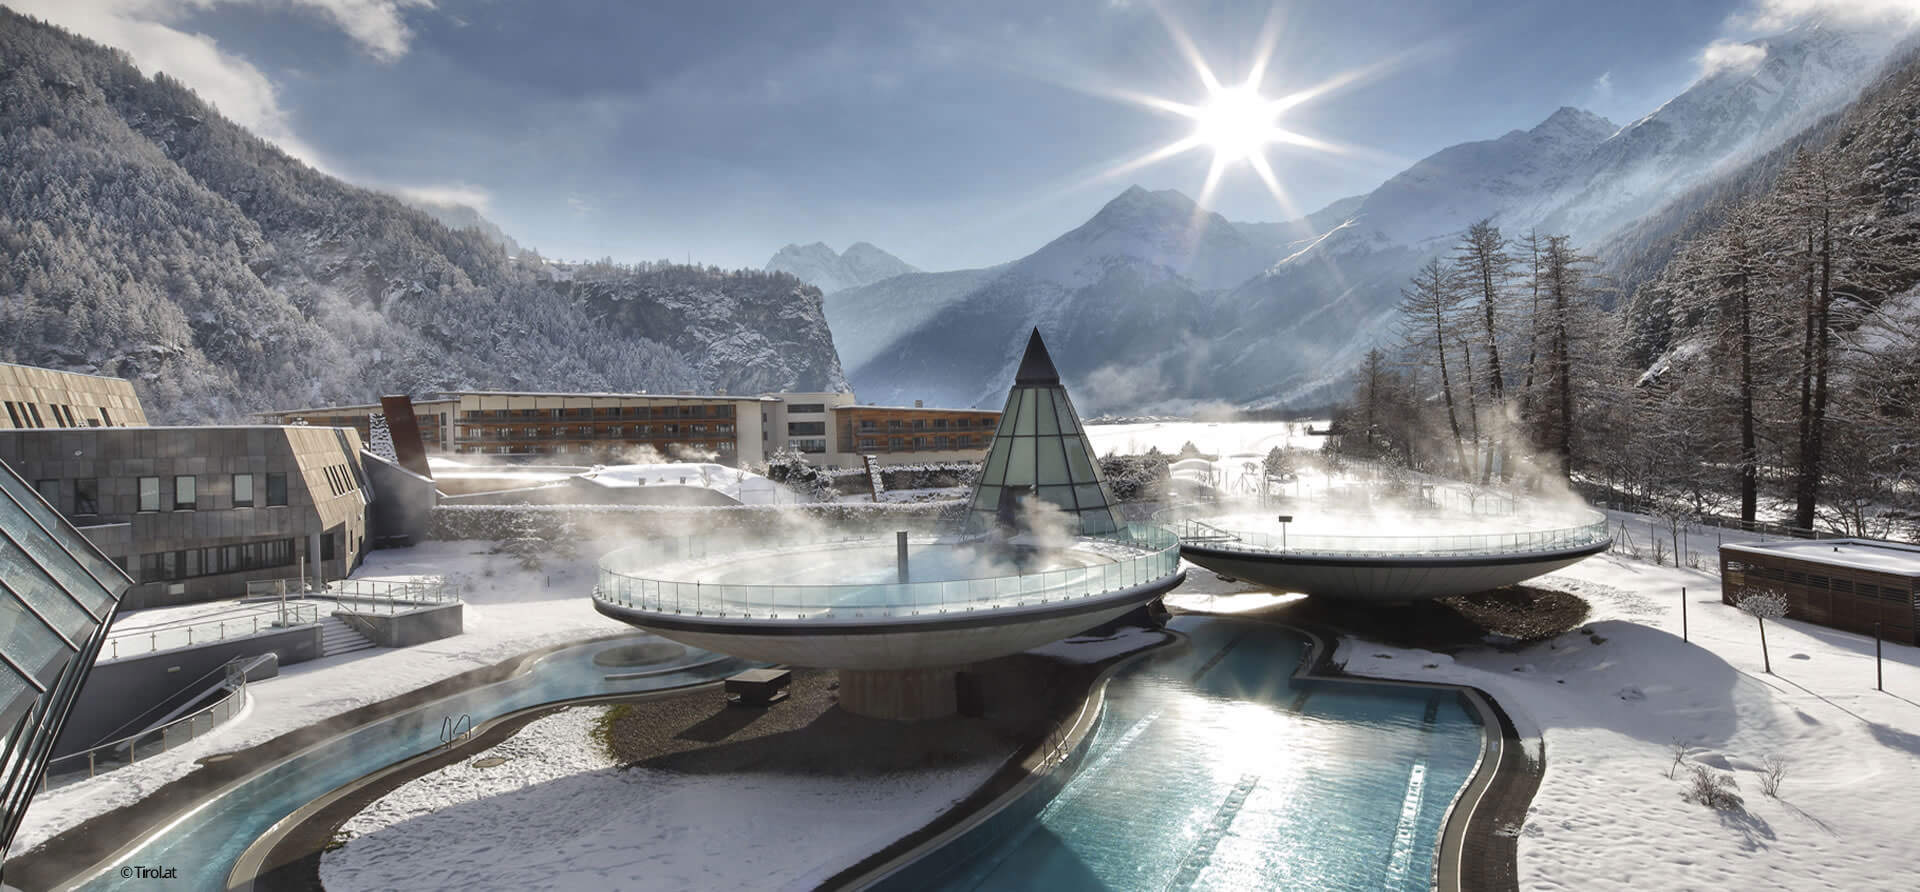 In Längenfeld, fans of wellness will get their money's worth at the Aqua Dome spa in Tyrol.